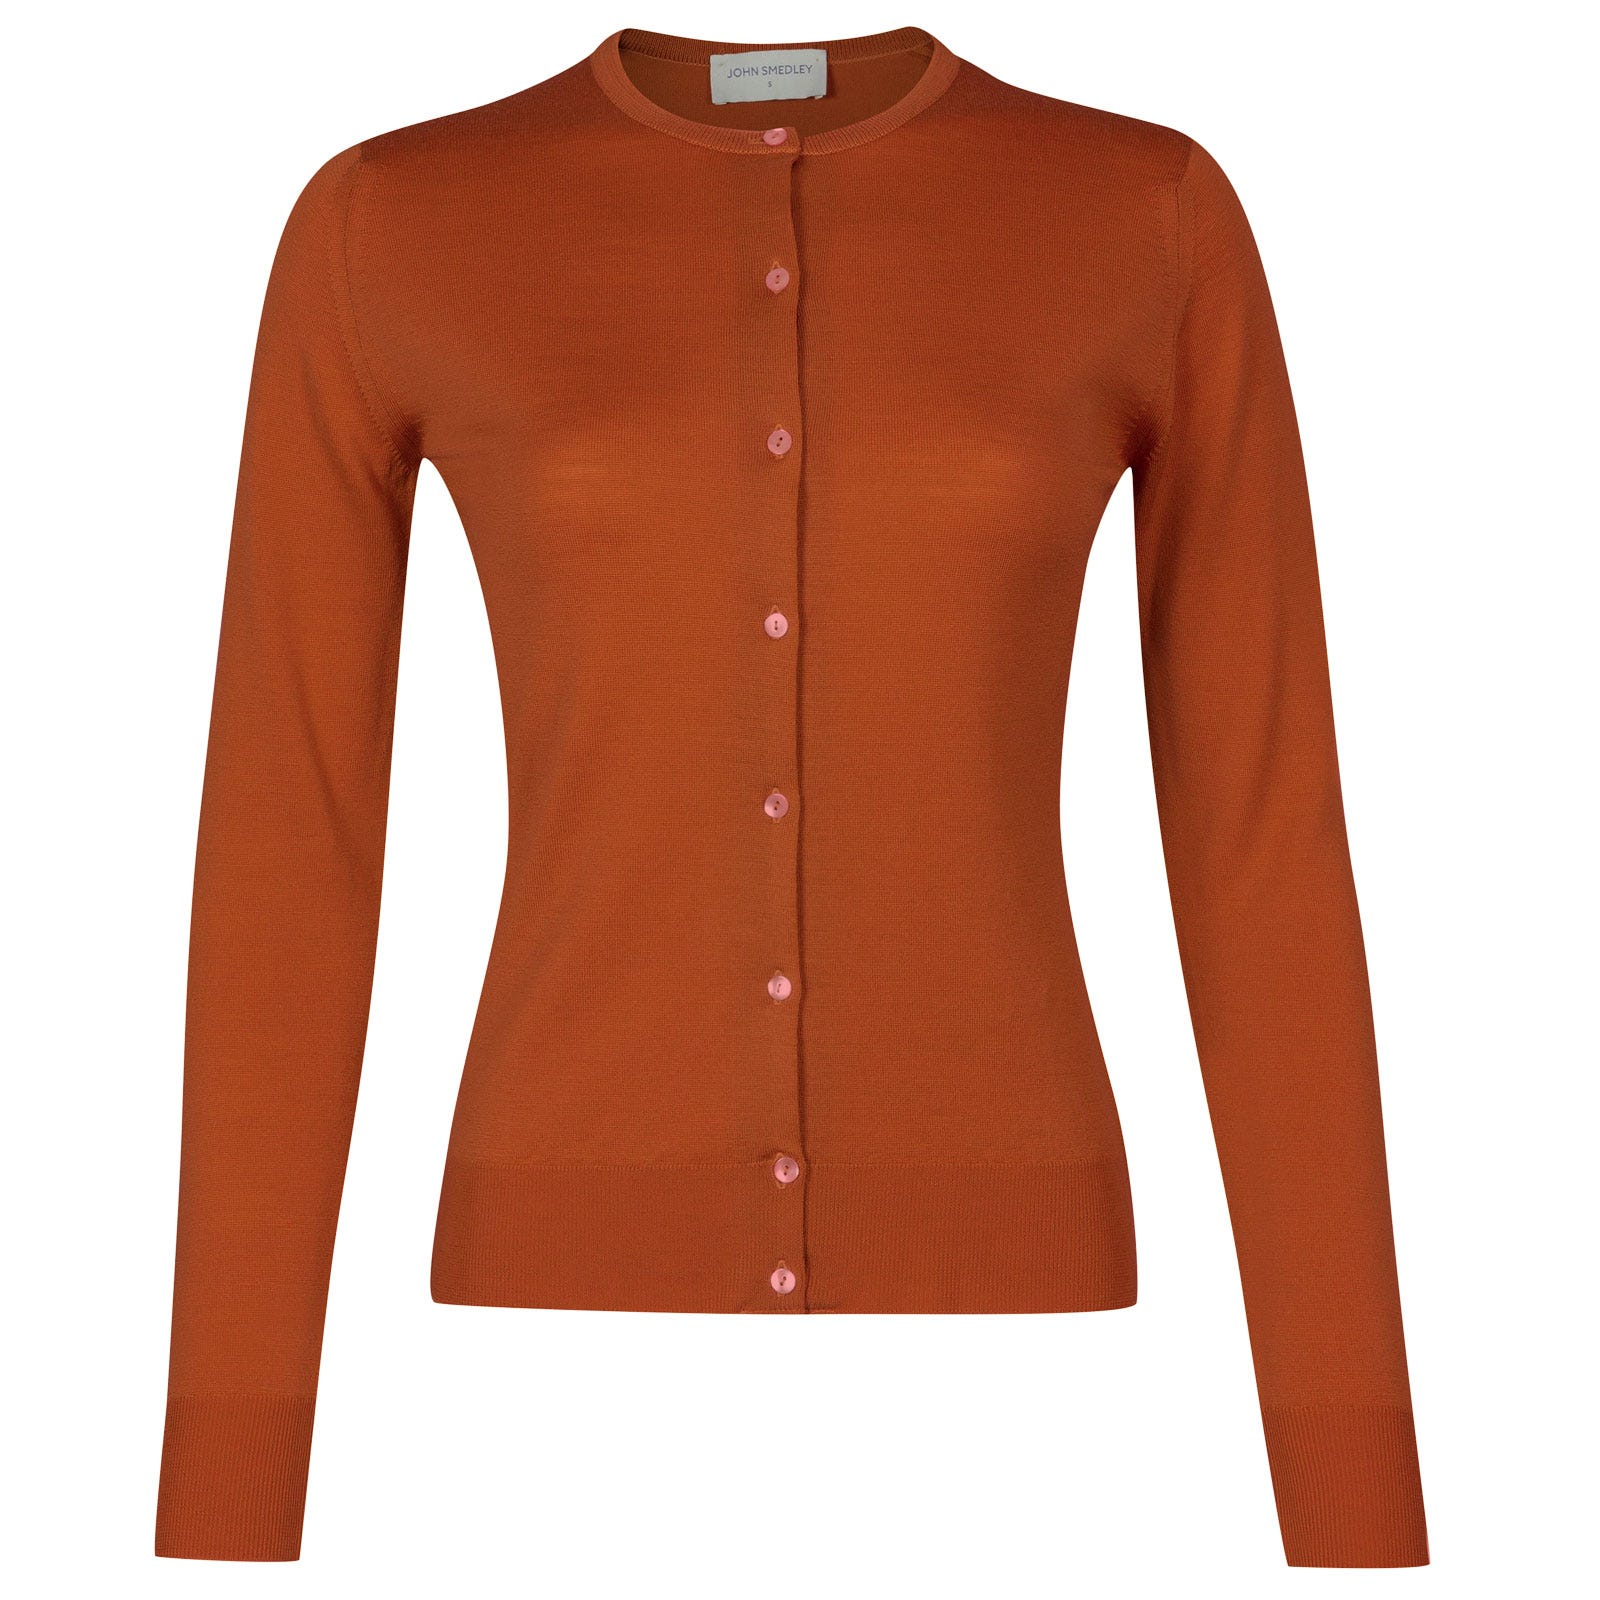 John Smedley pansy Merino Wool Cardigan in Flare Orange-S